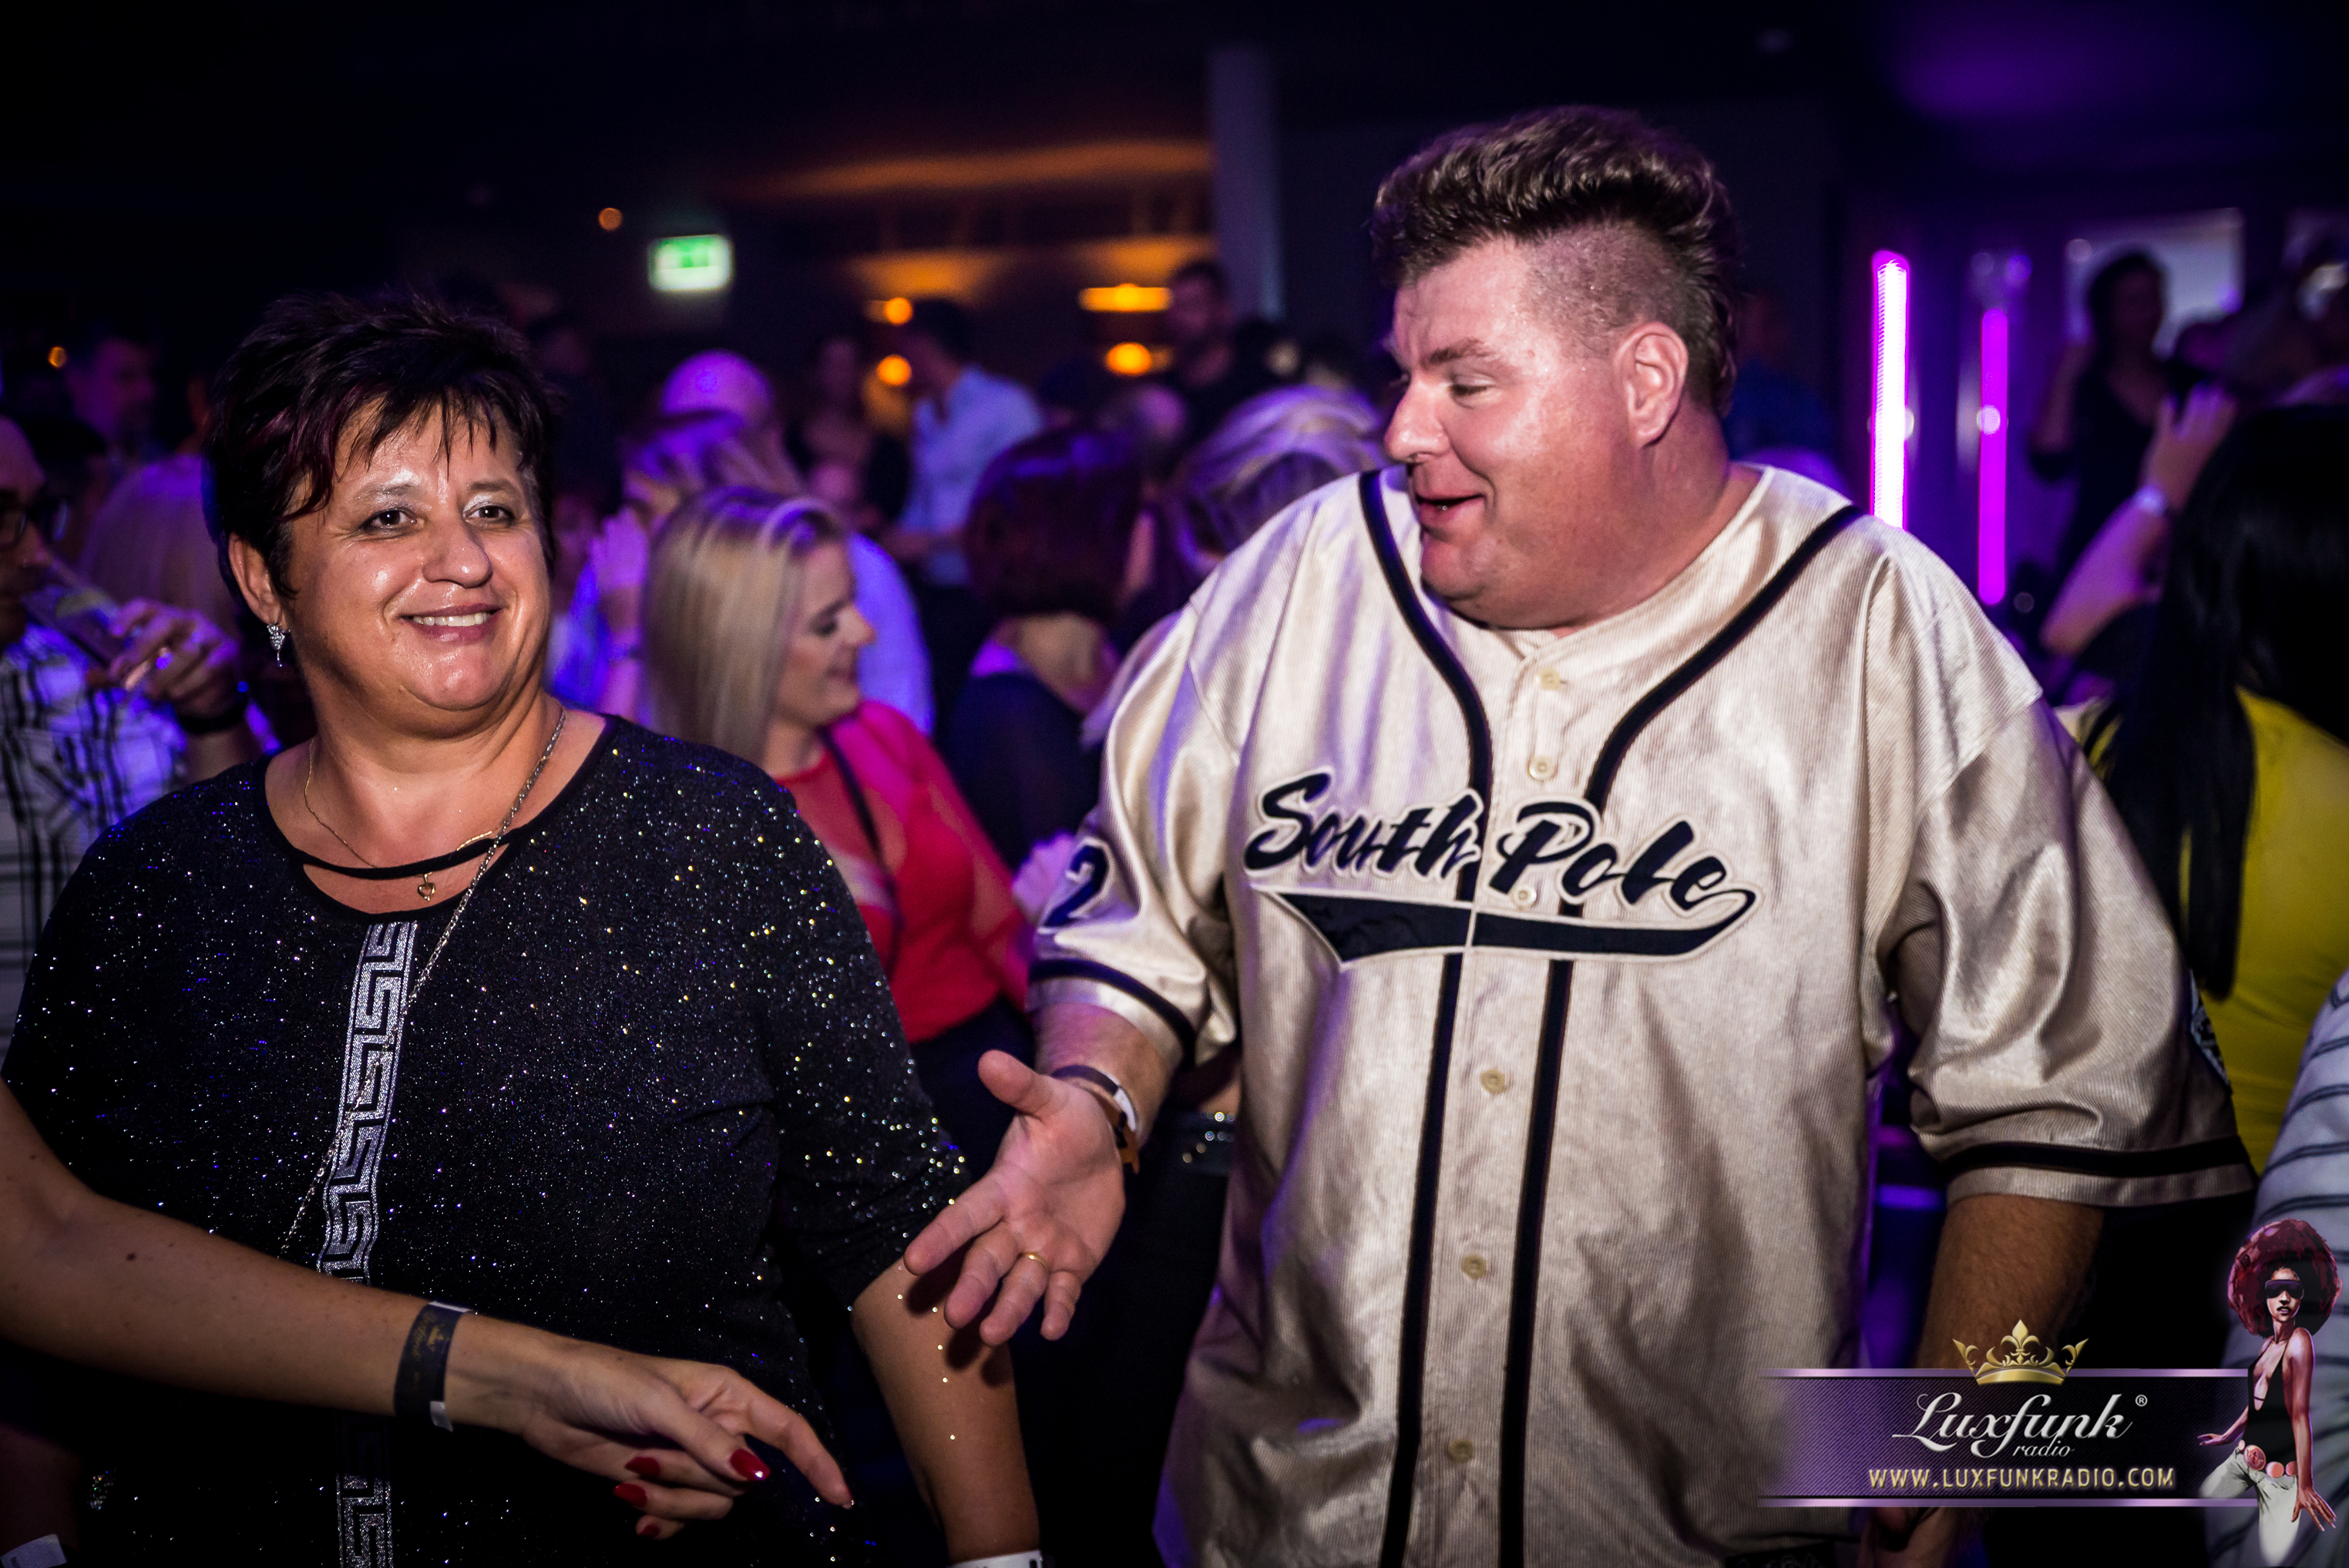 luxfunk-radio-funky-party-20191108-lock-budapest-1266